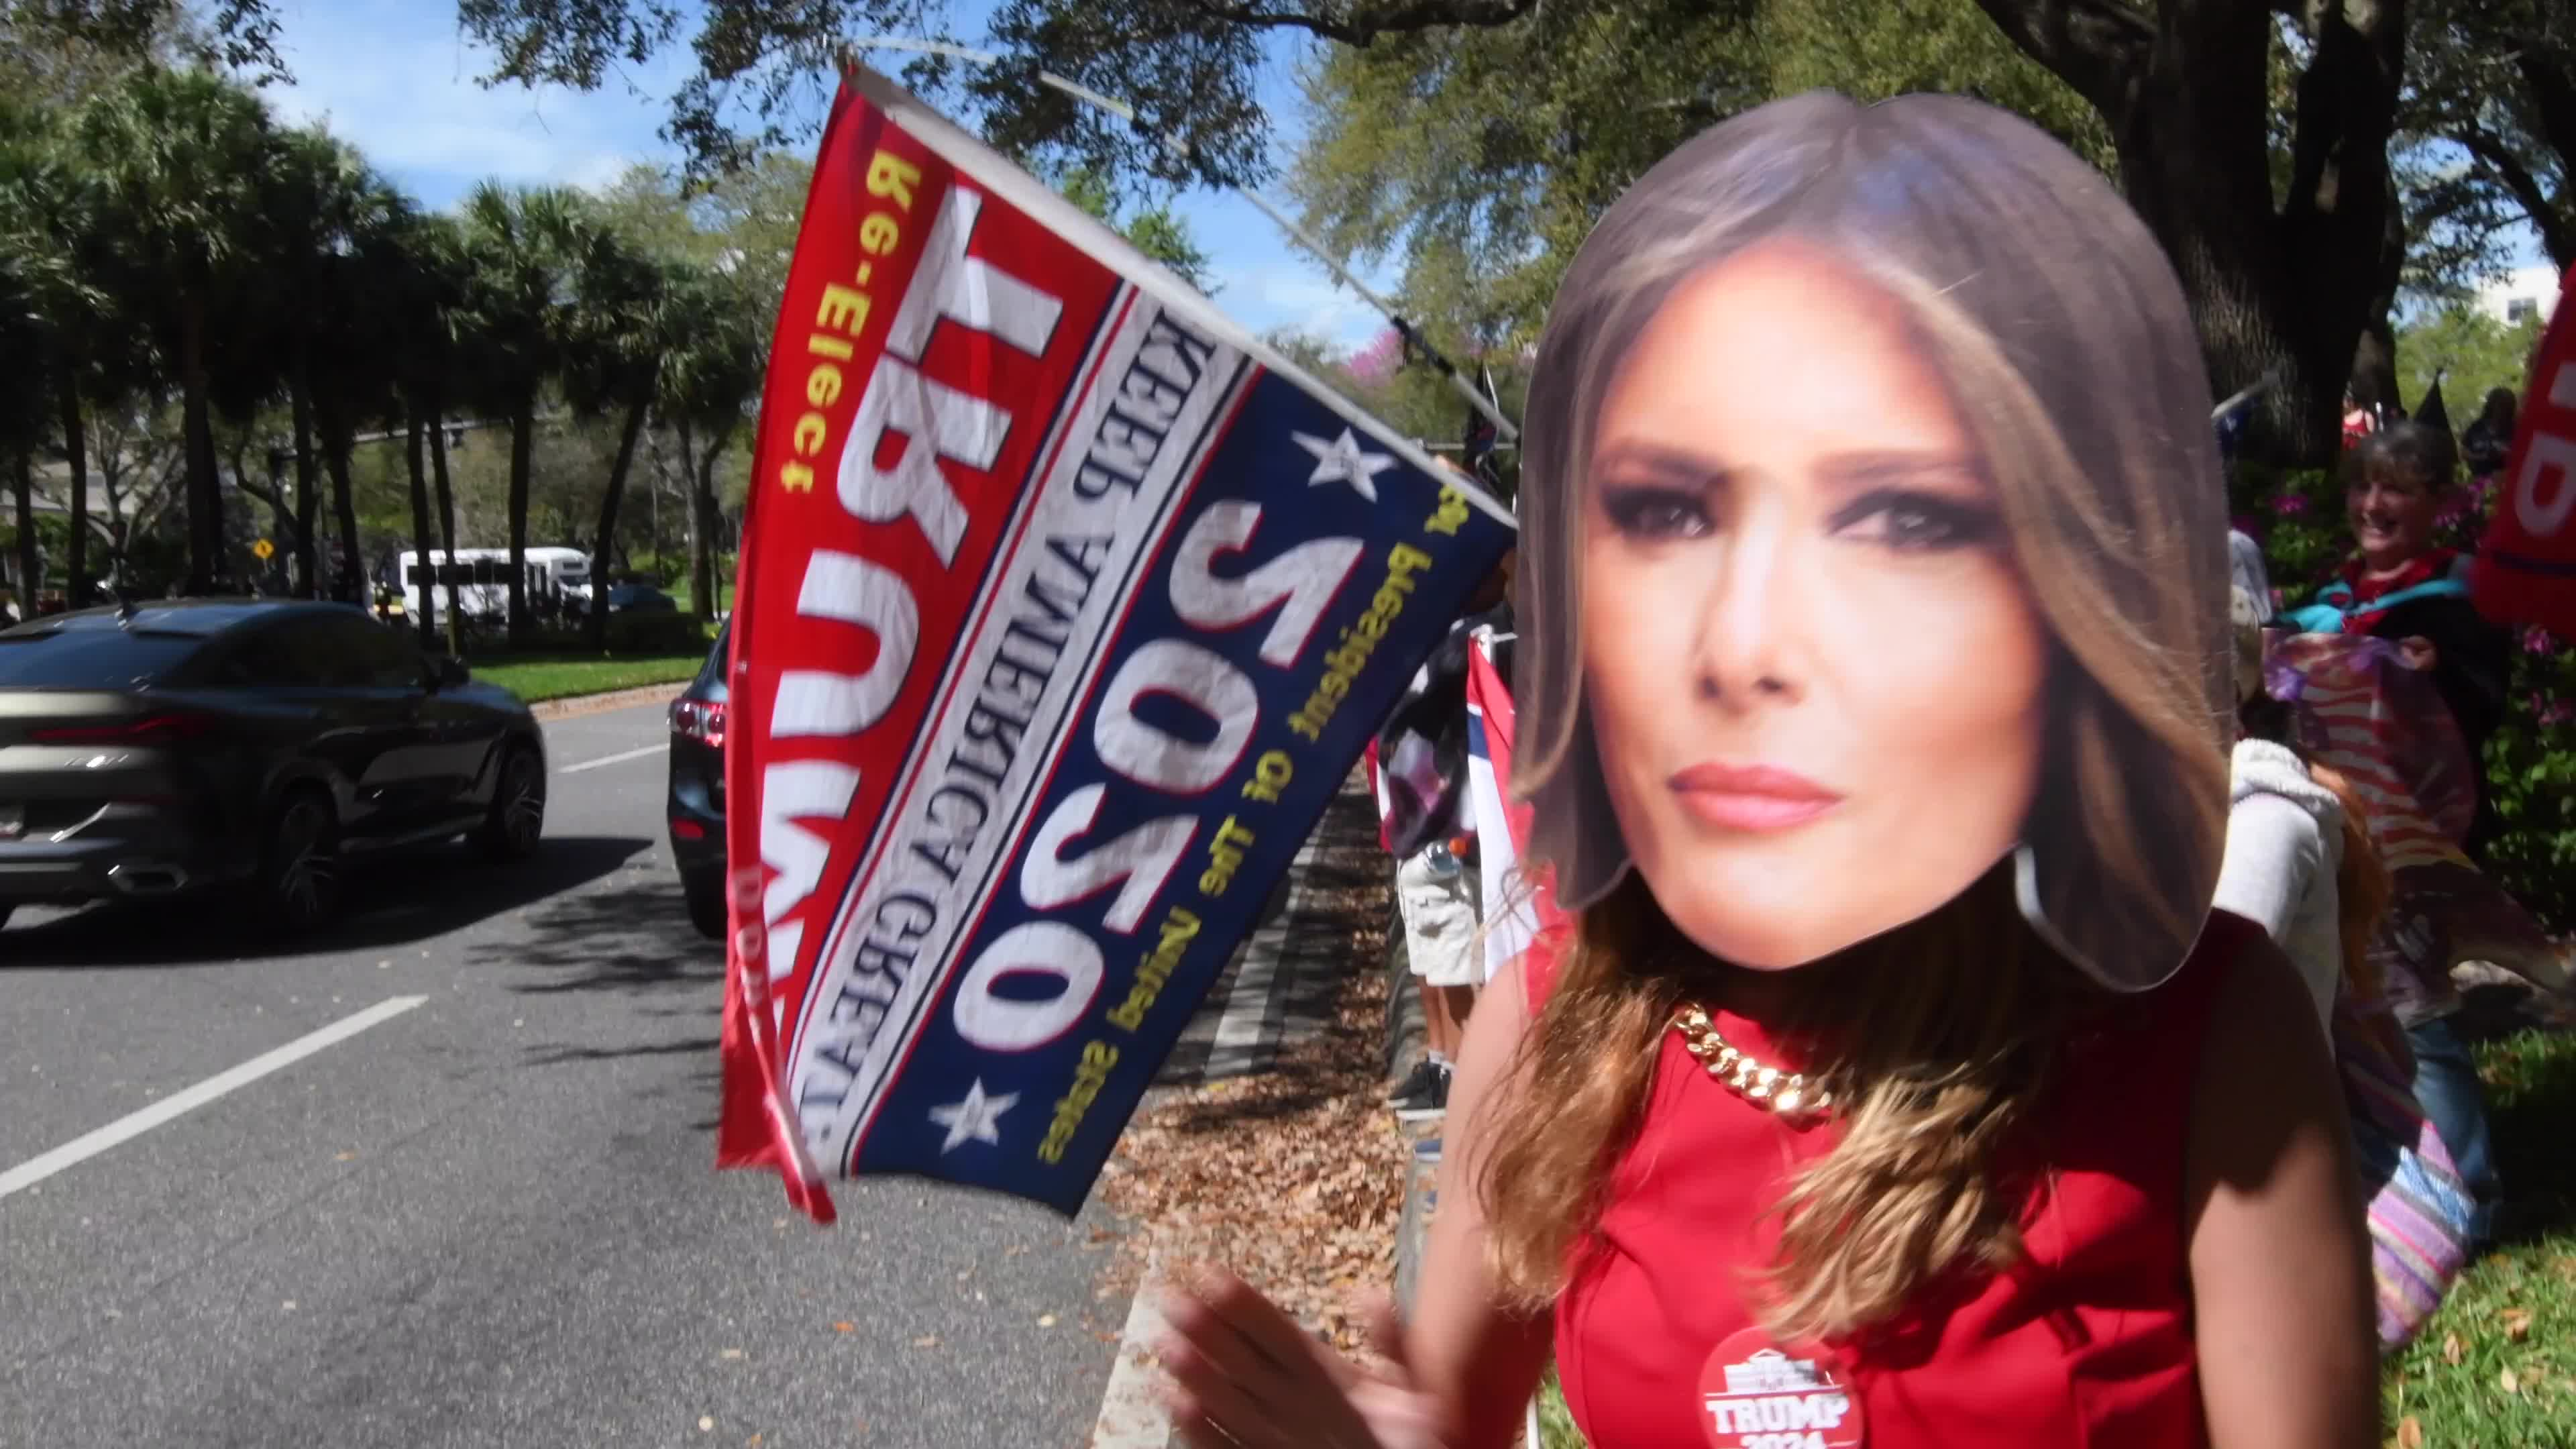 Trump Supporters Rally at CPAC in Orlando